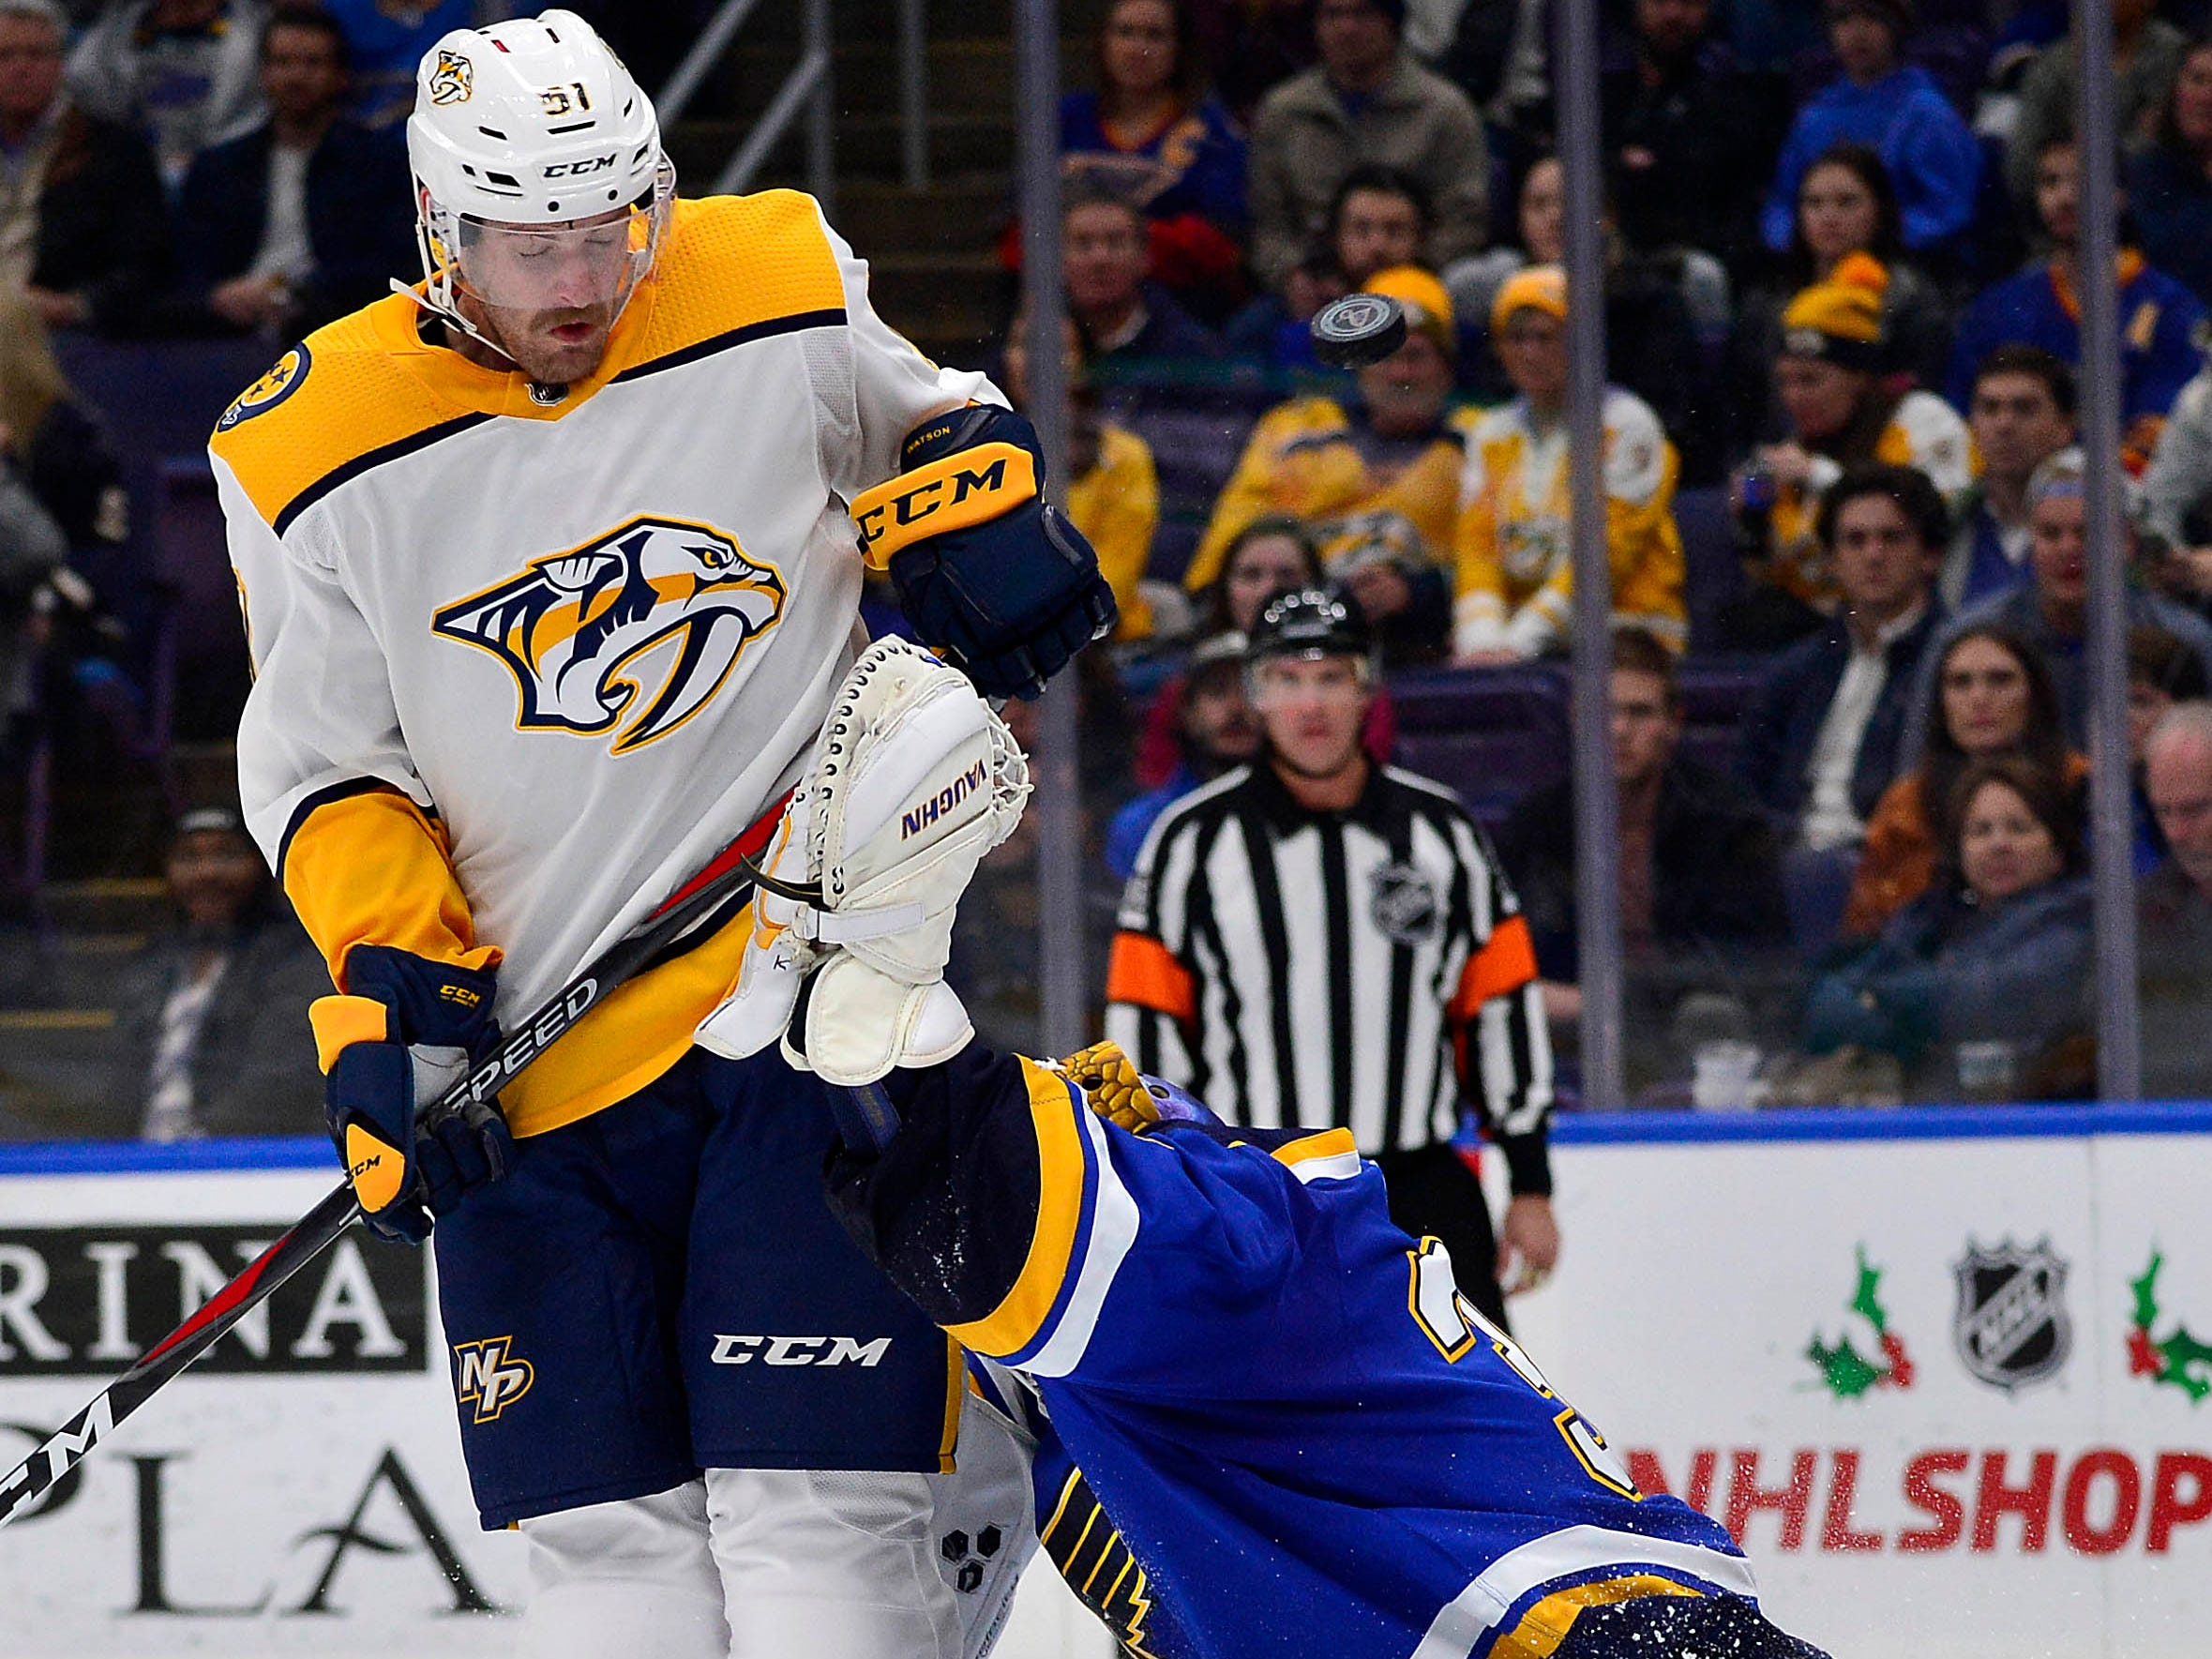 Nashville Predators left wing Austin Watson (51) leaps as he attempts to block St. Louis Blues goaltender Jake Allen (34) during the second period at Enterprise Center.